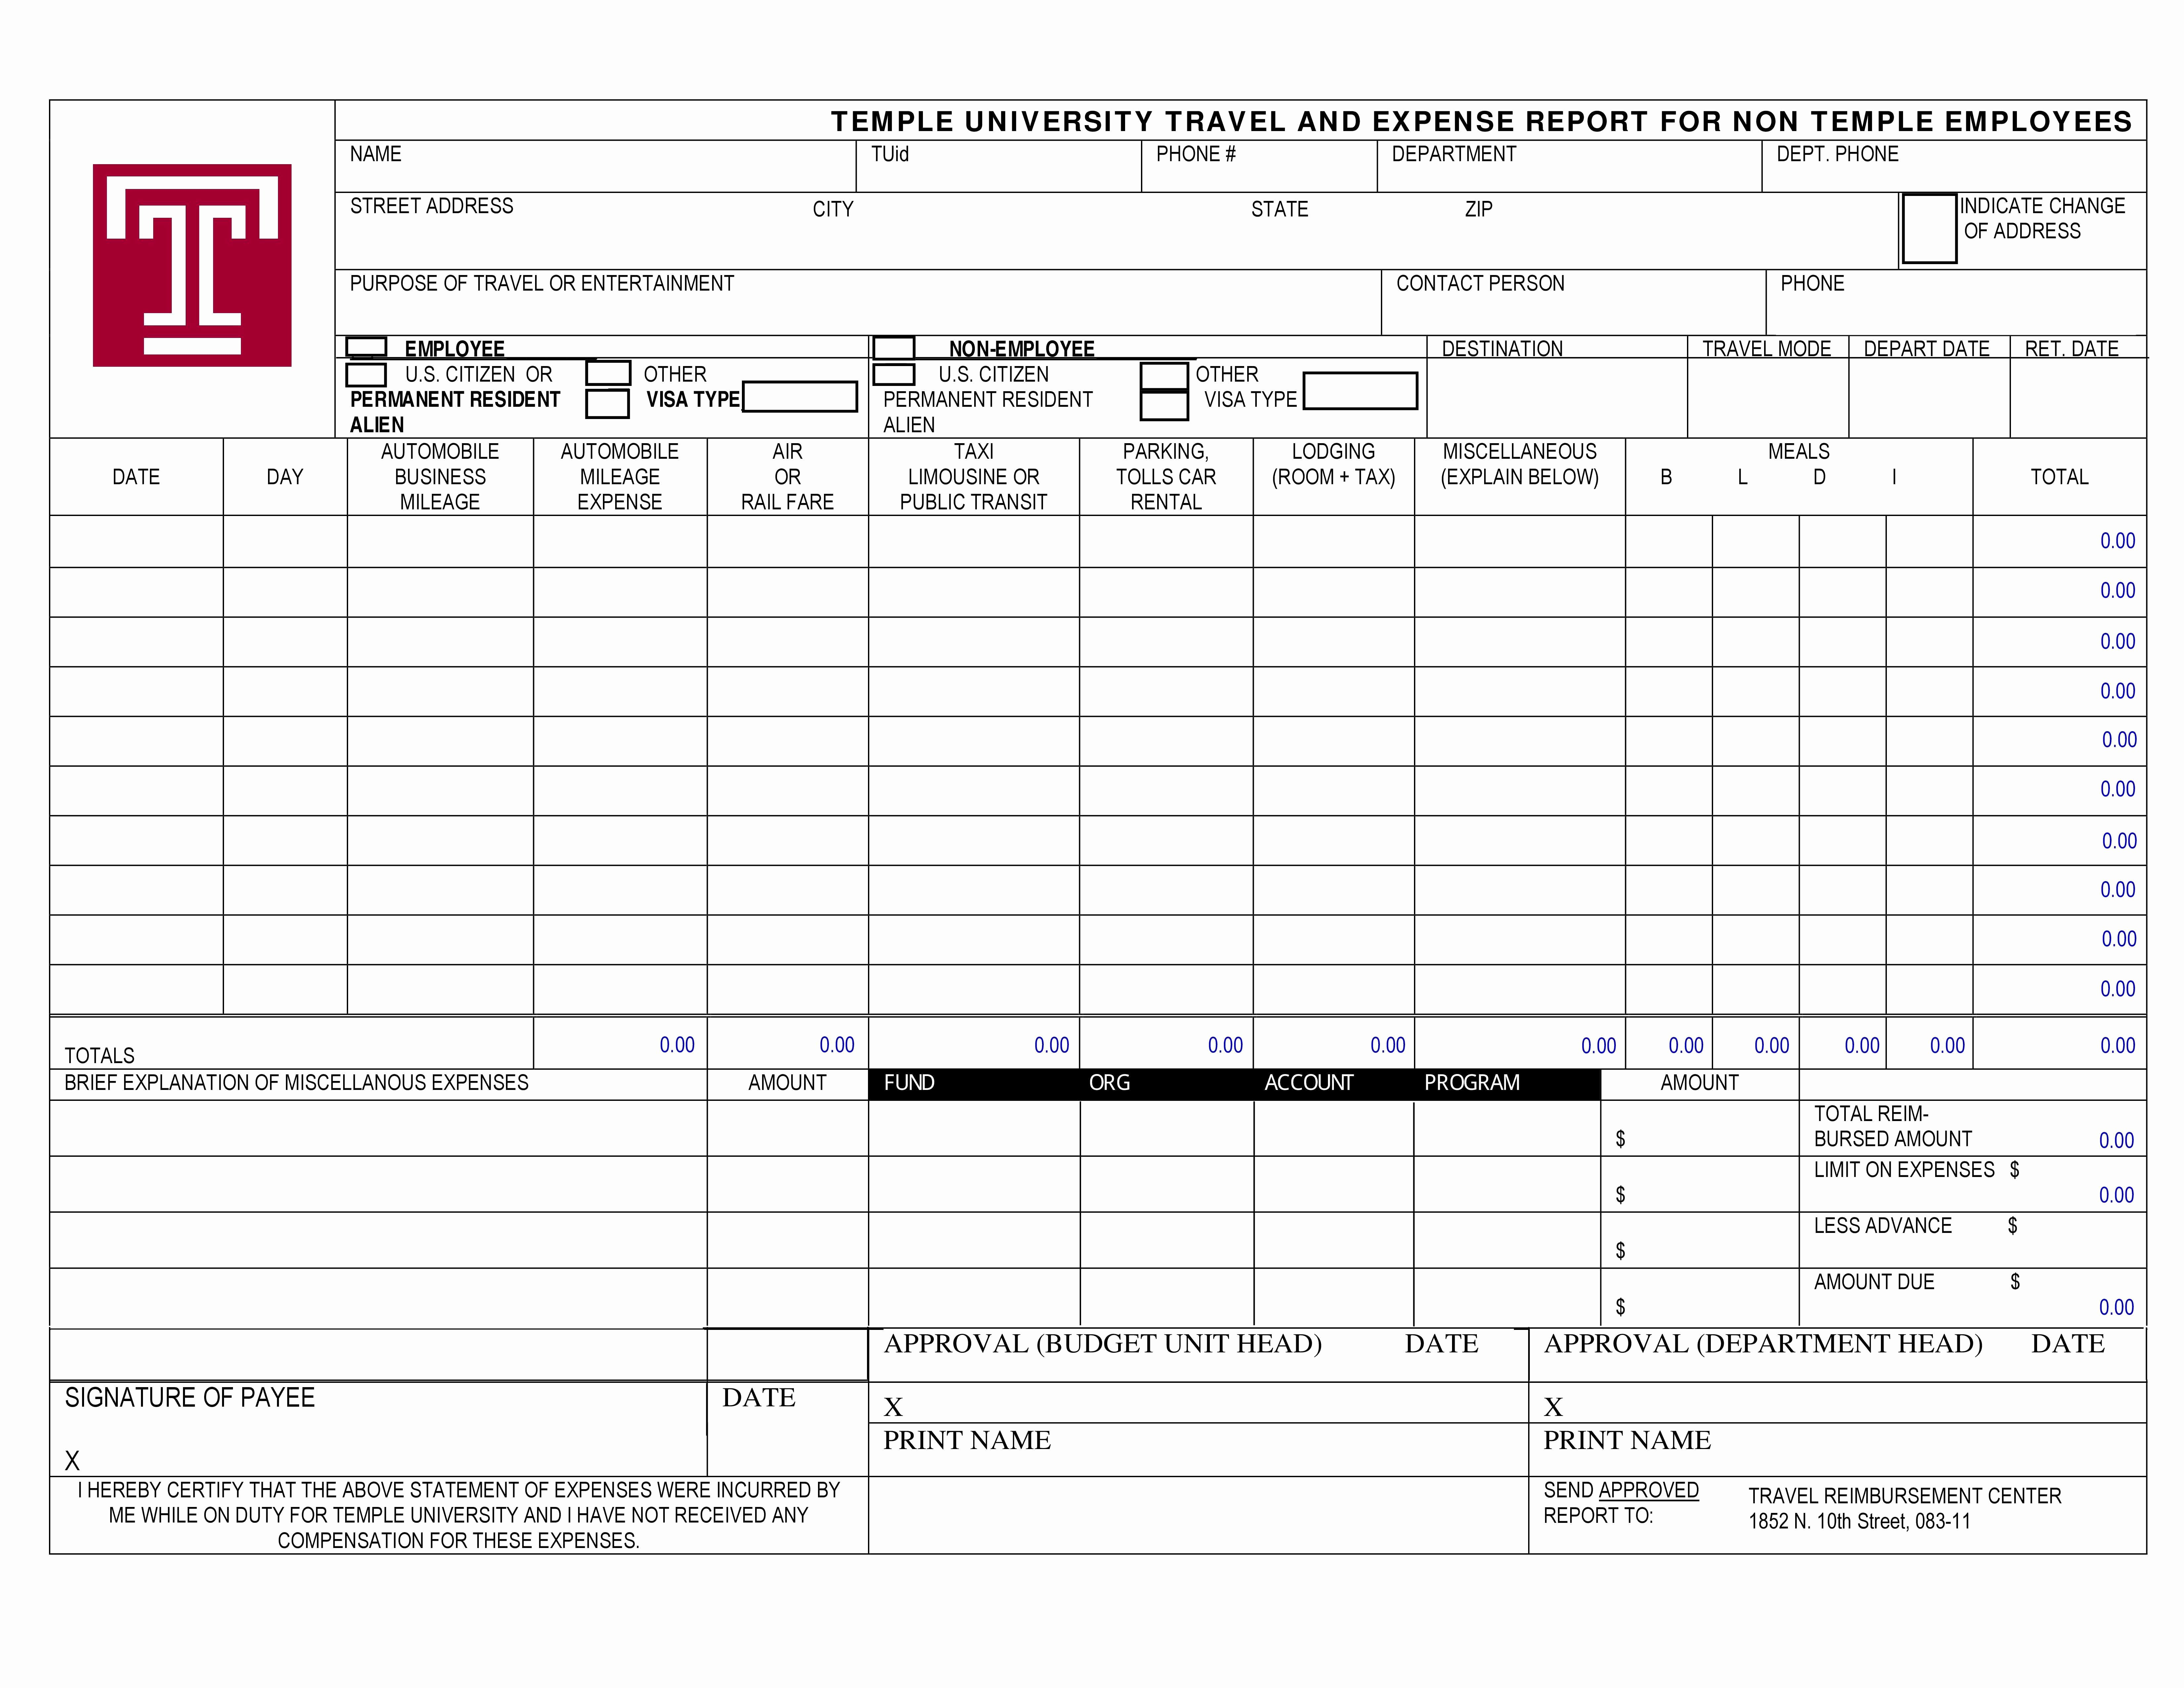 Template for Expense Report Luxury 40 Expense Report Templates to Help You Save Money